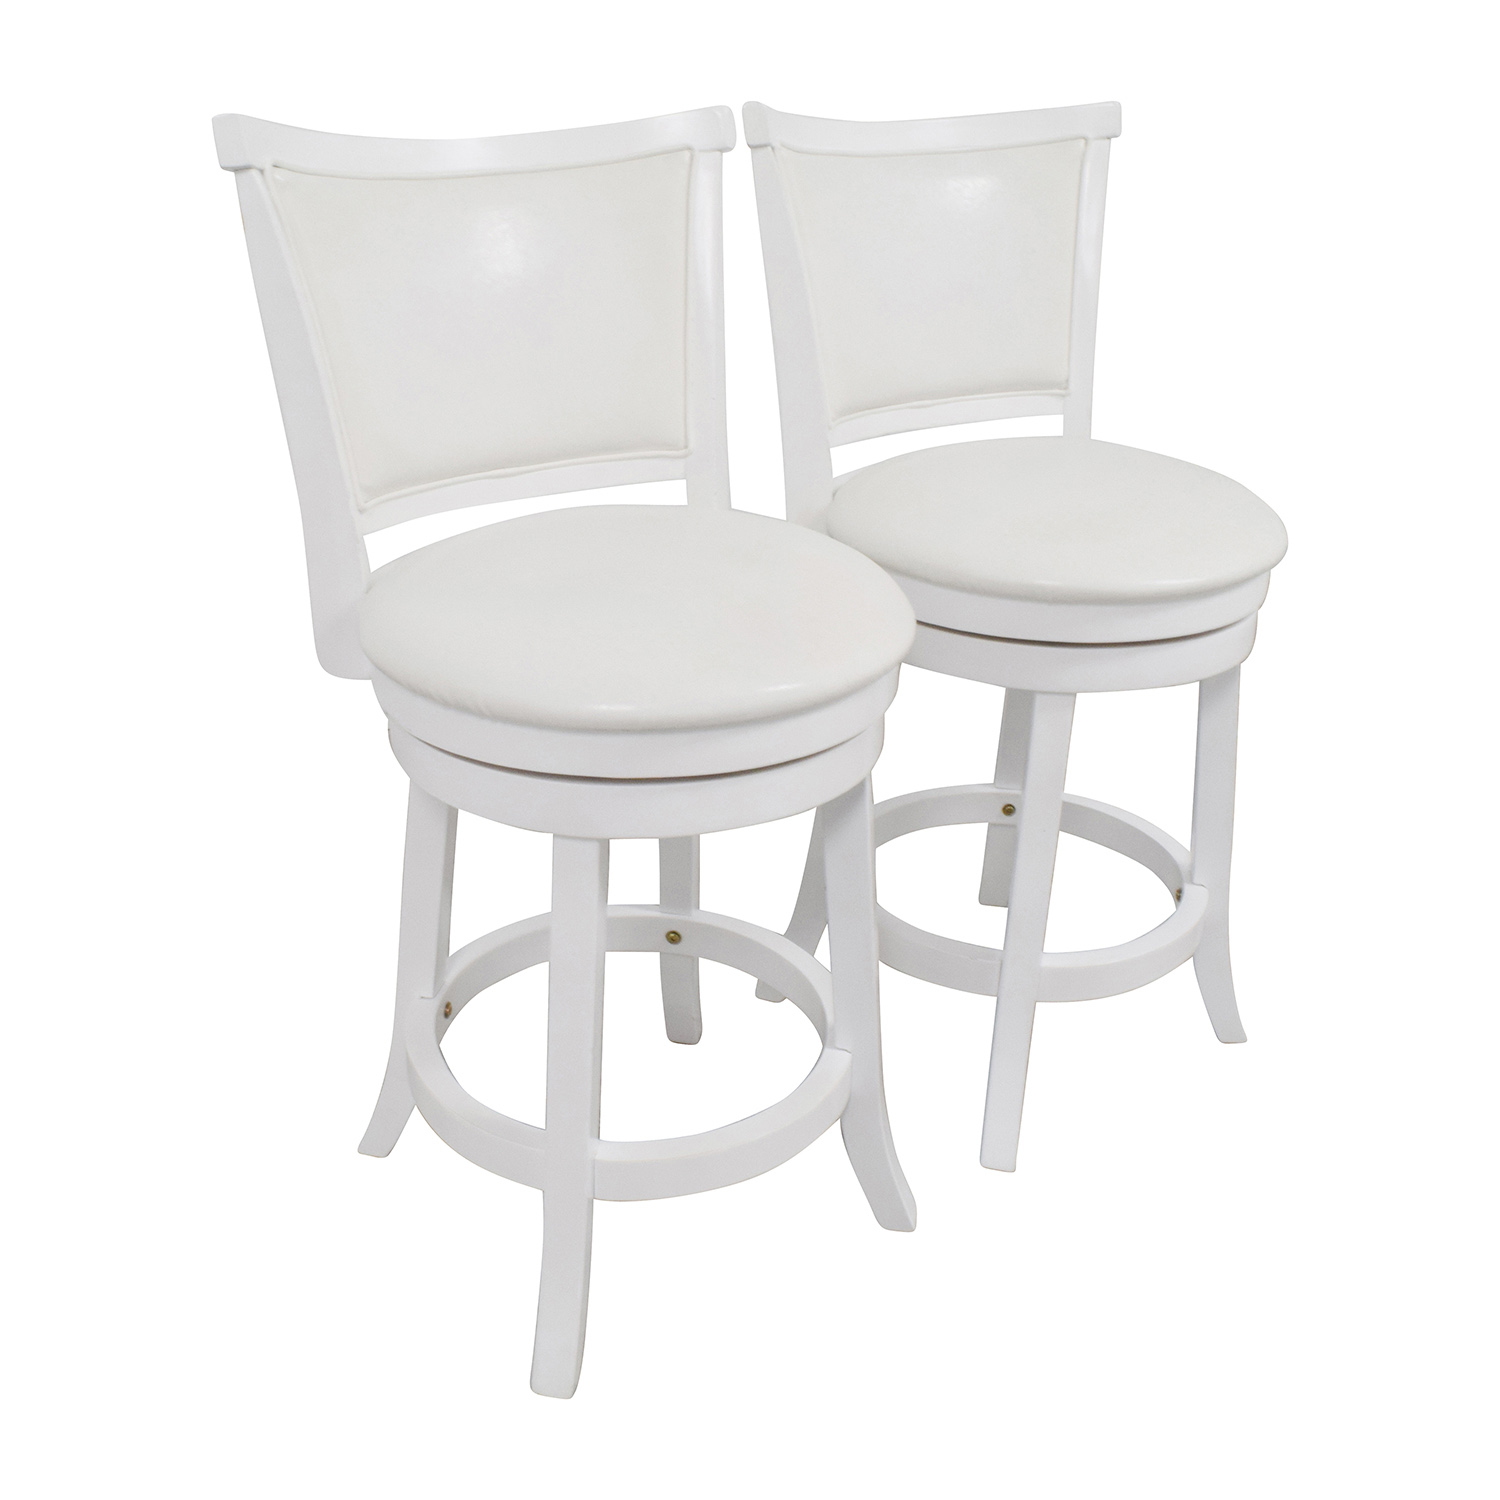 White Counter Height Chairs 90 Off Corliving Corliving White Leatherette Swivel